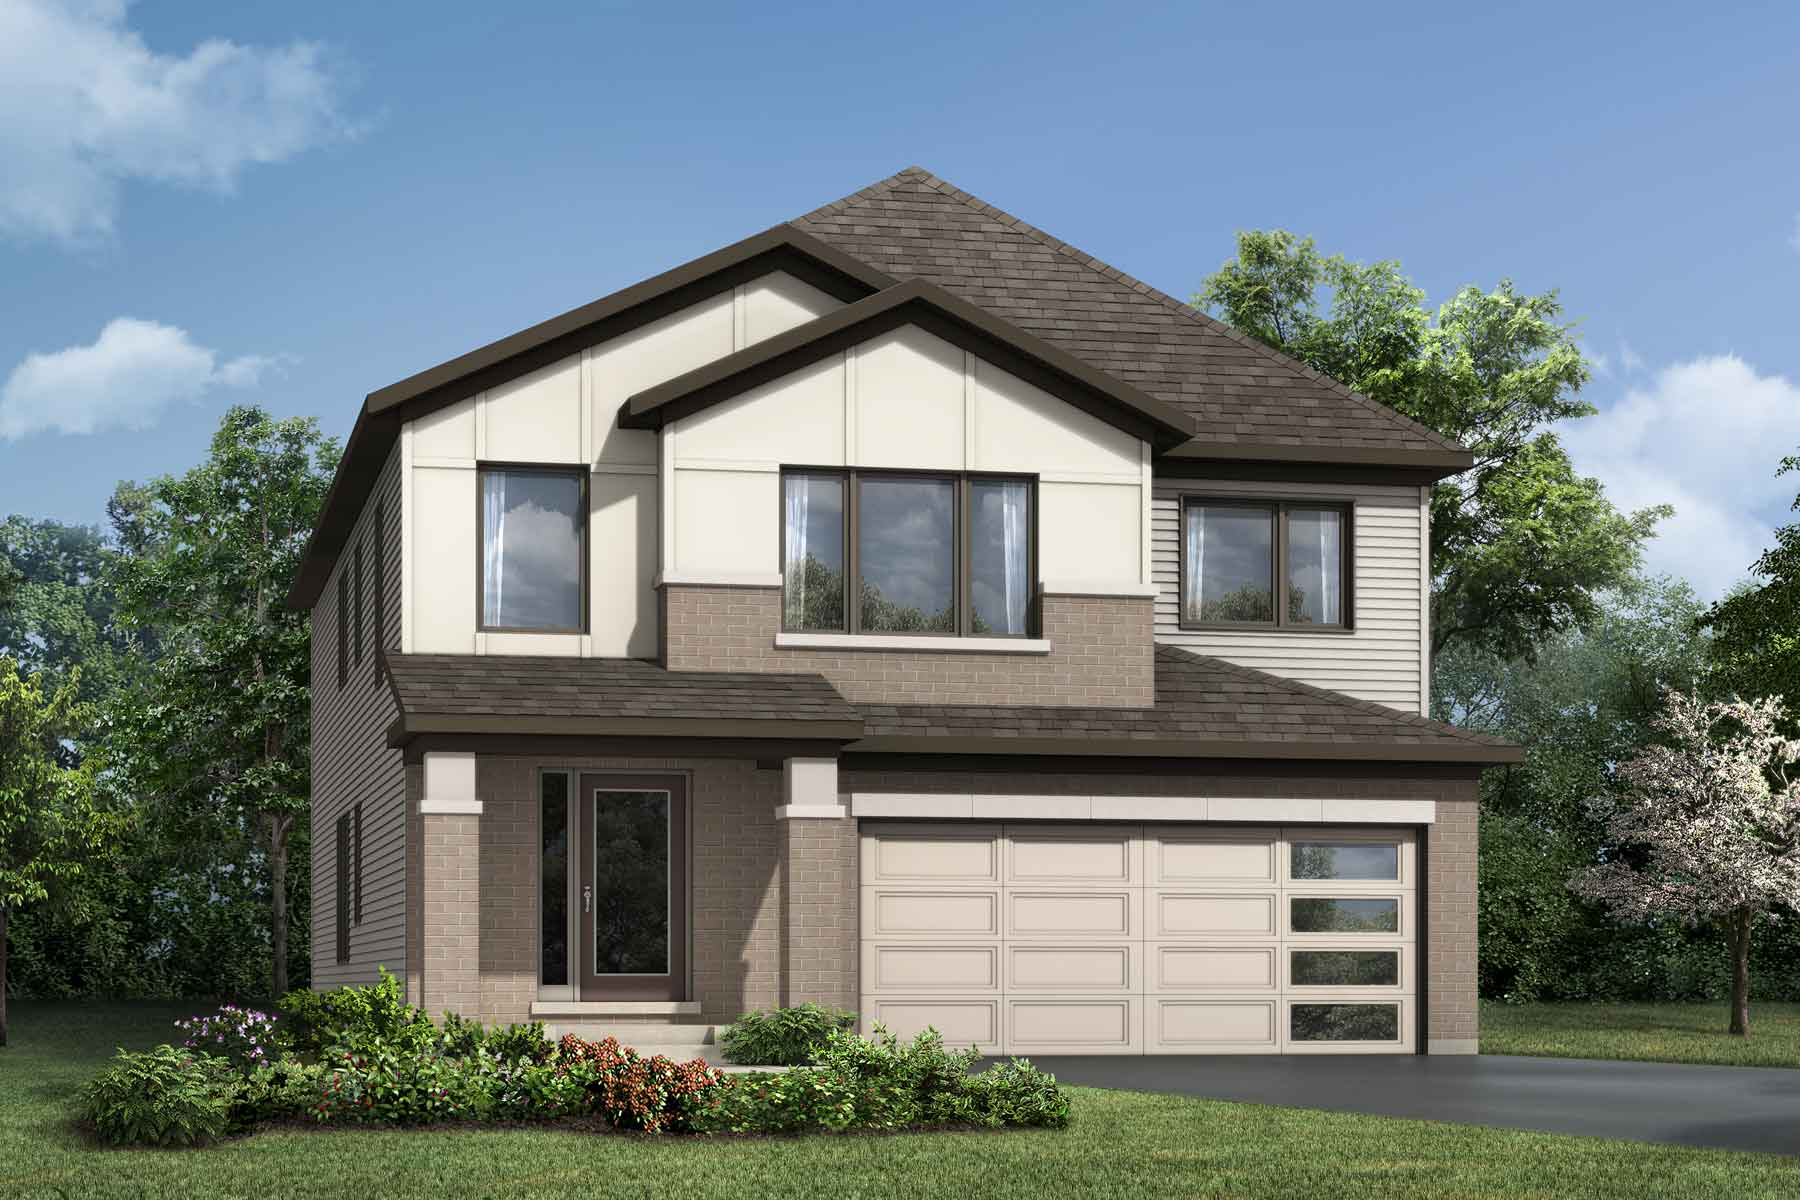 Connections In Kanata Elevation Front in Kanata Ontario by Mattamy Homes